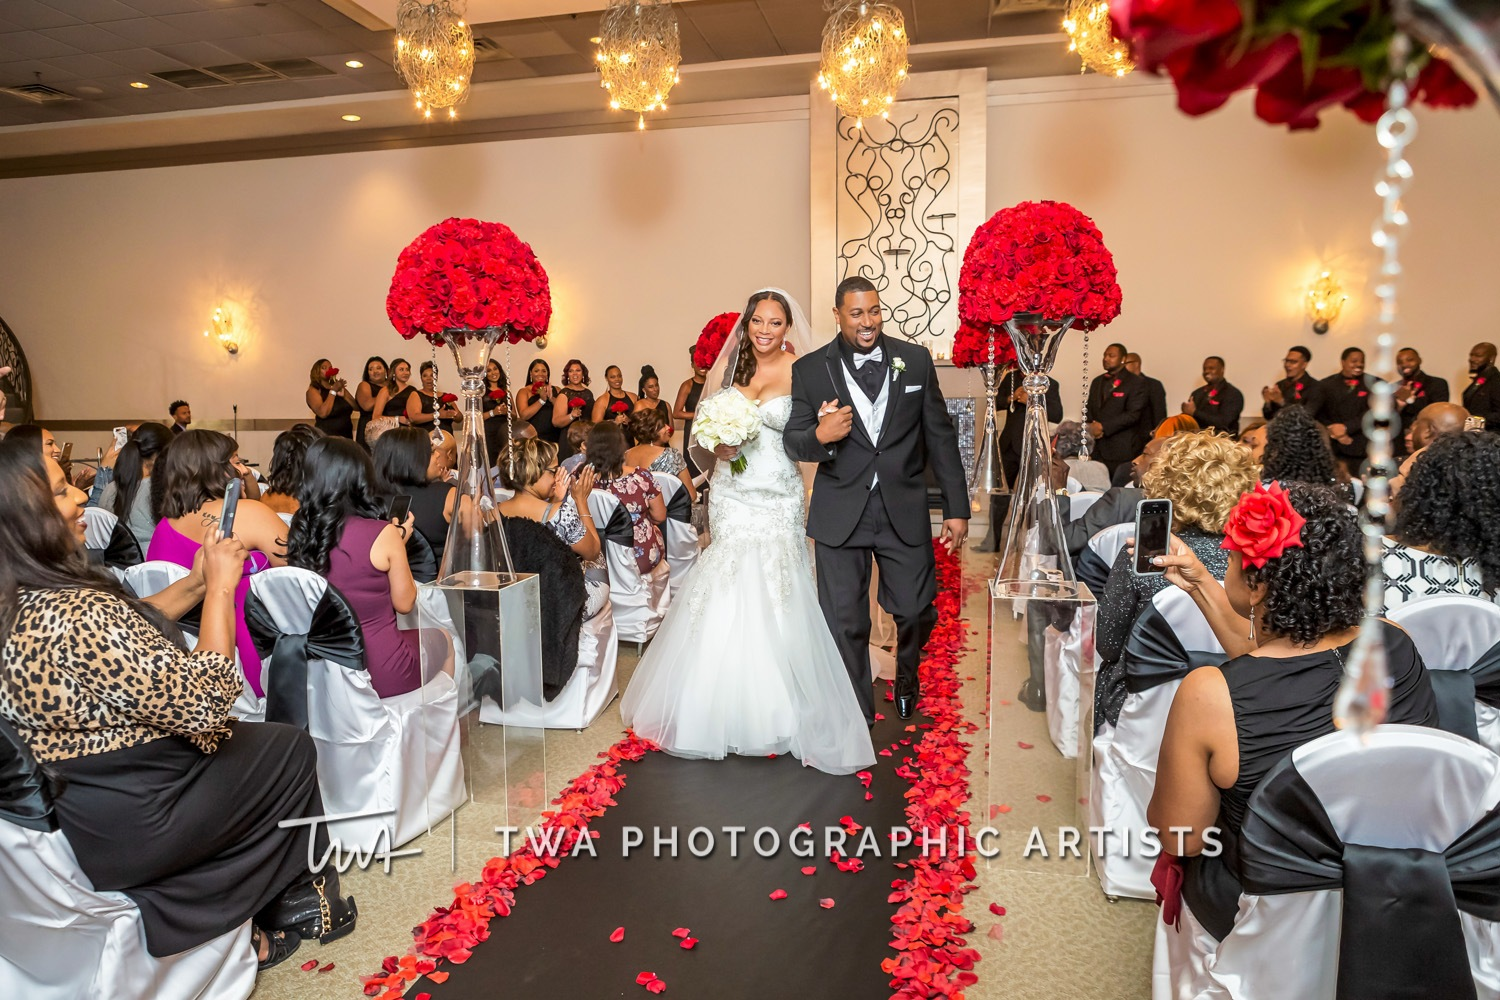 Chicago-Wedding-Photographer-TWA-Photographic-Artists-Belvedere-Banquets_Chambers_Robinson_MiC-0356